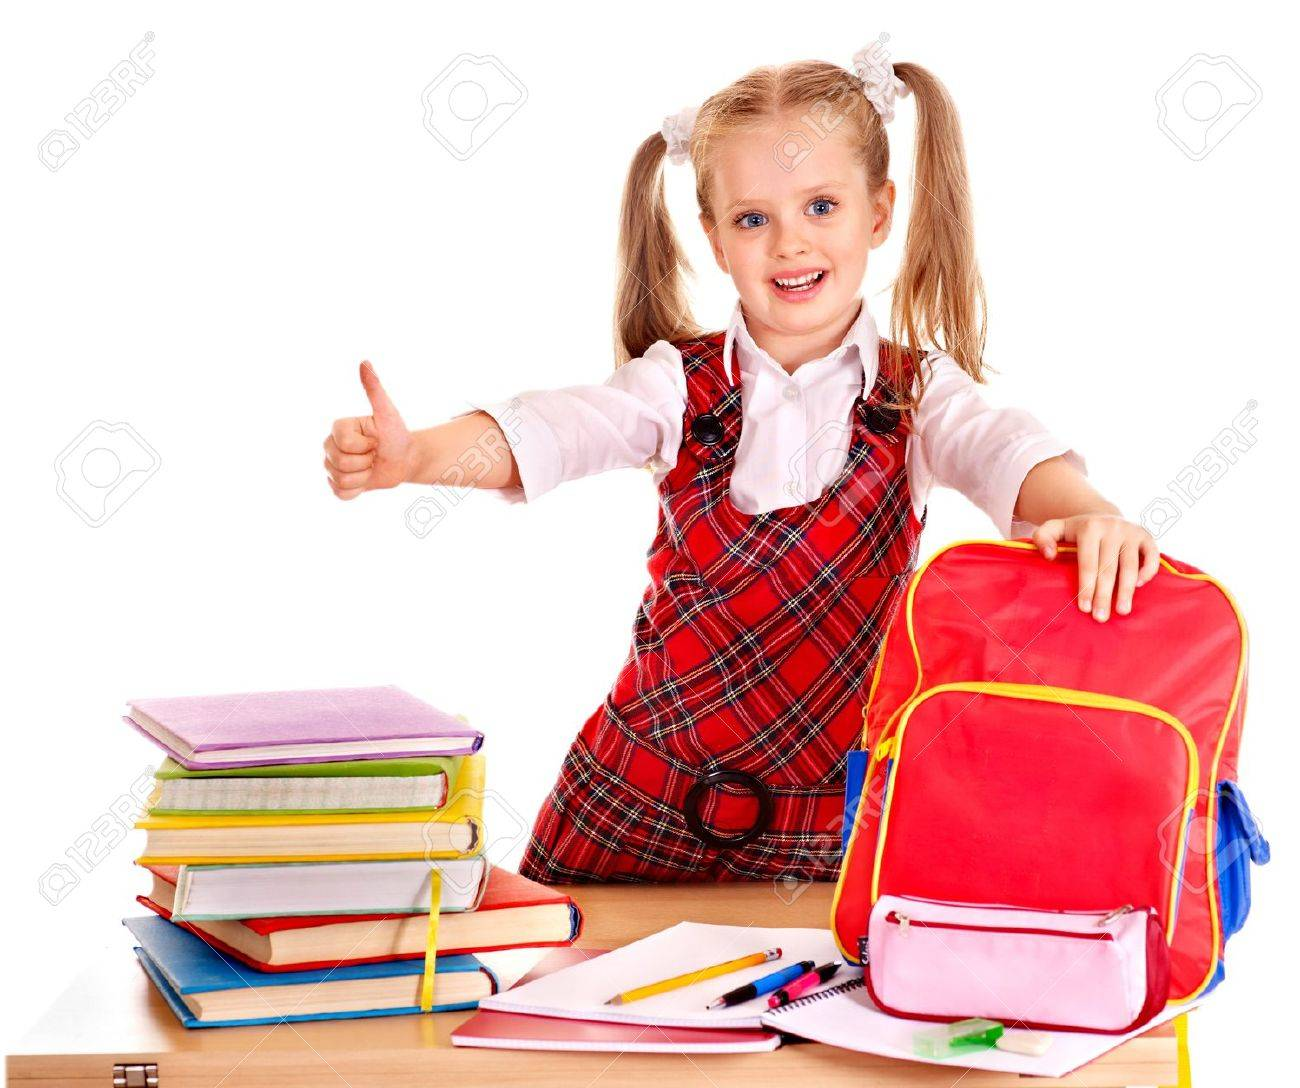 Child with school supplies and book. Isolated. Stock Photo - 19556272